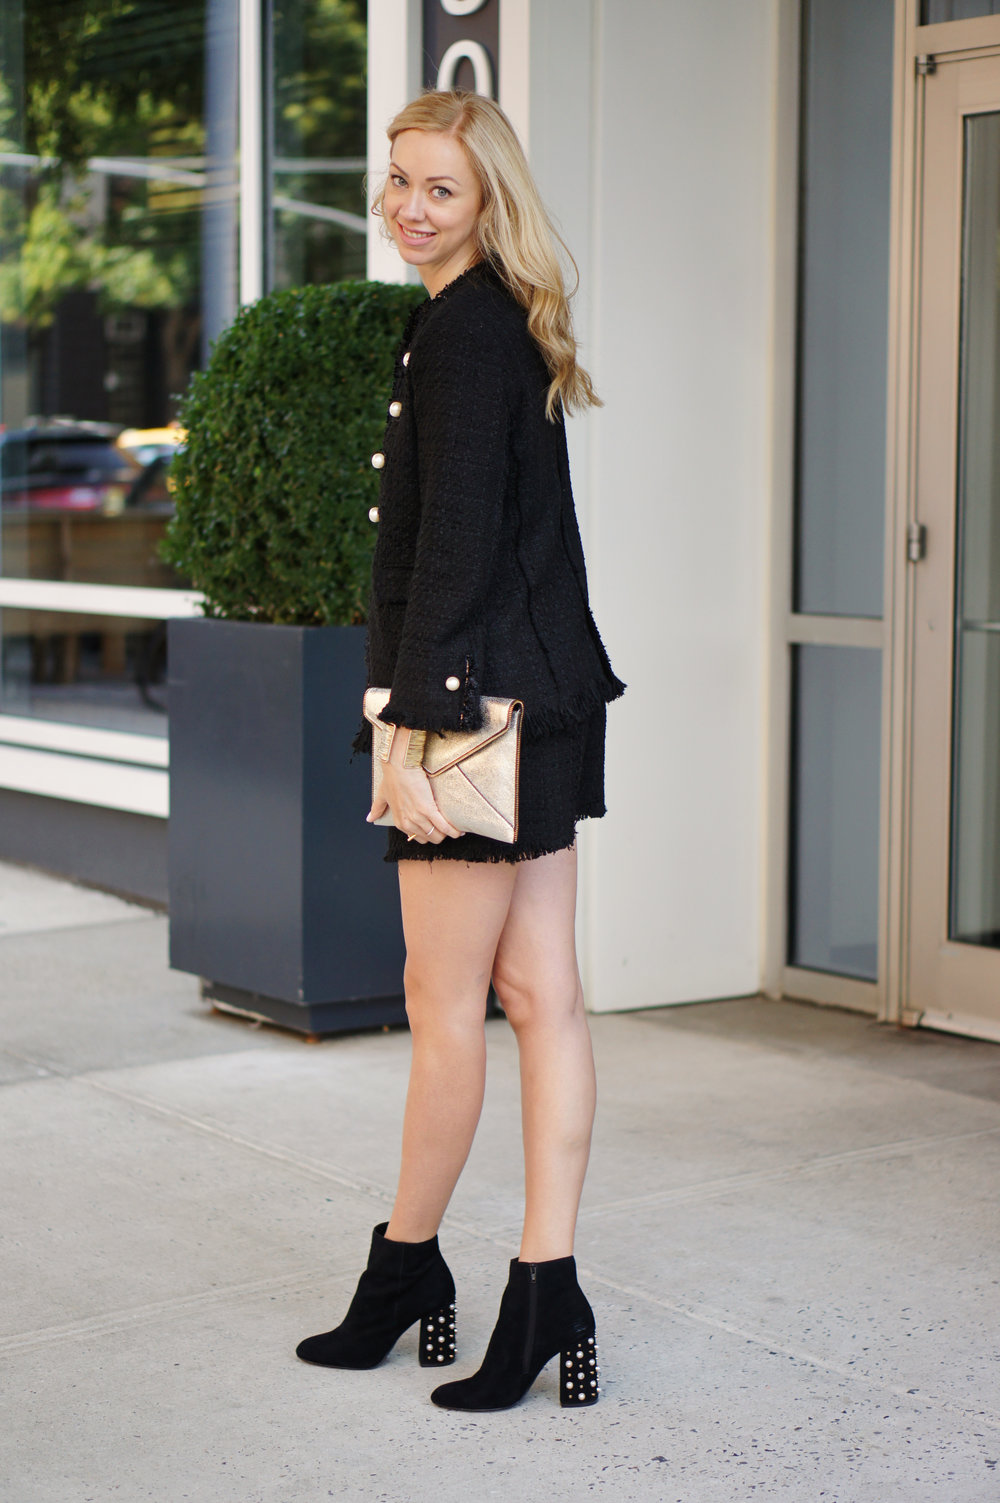 rebecca-minkoff-leo-clutch-black-boots-tweed-jacket-black.jpg